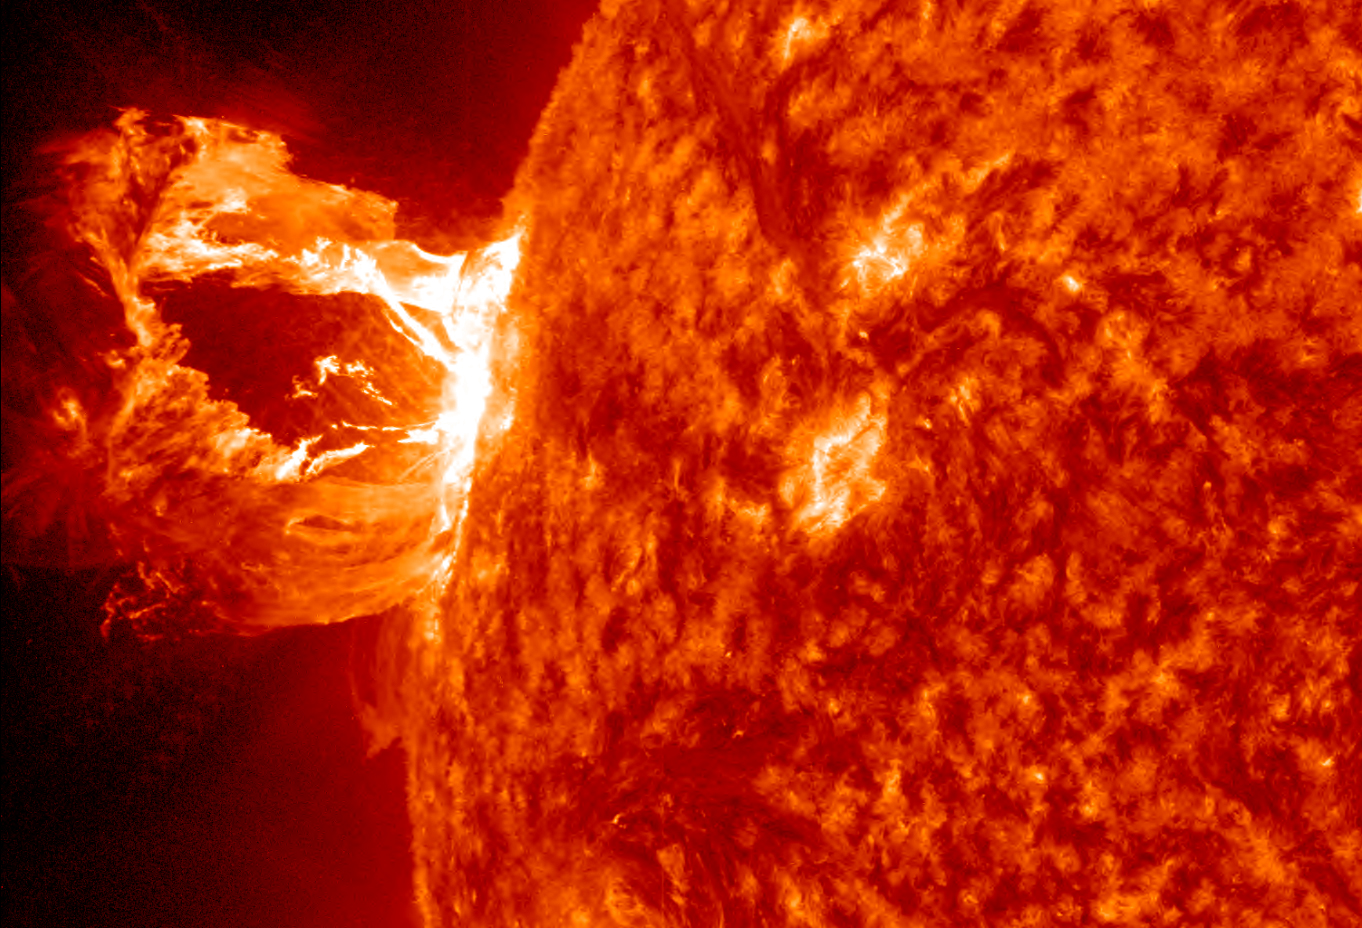 Solar Superflares Need To Be Understood For Future Space Missions' Sake (space.com)